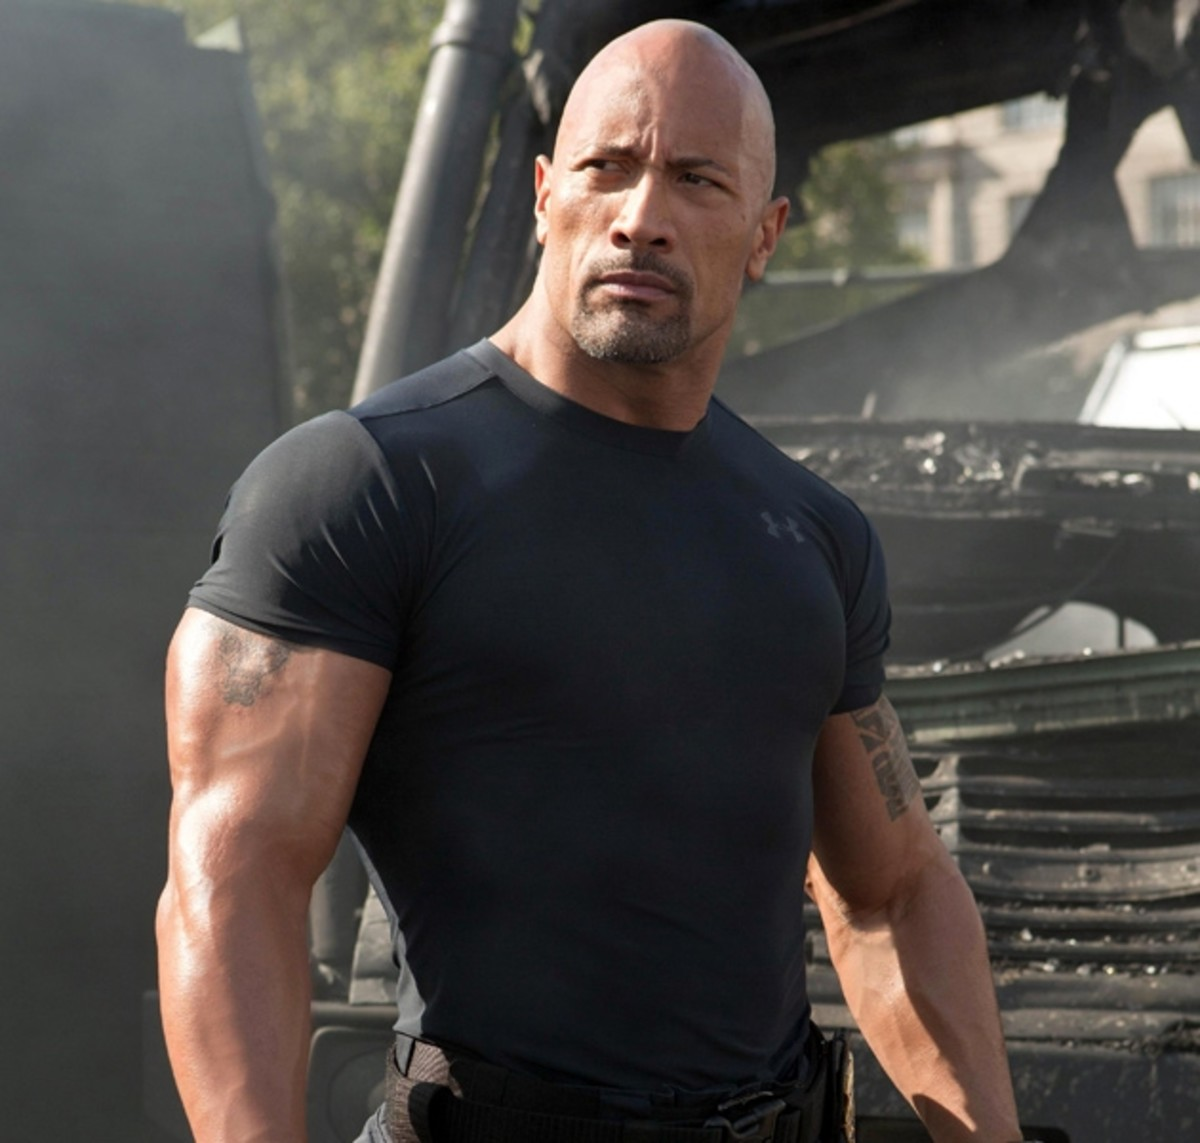 One of the highlights of this movie is seeing Dwayne Johnson play his usual self - with some unpredictability as far as his normalcy is concerned.